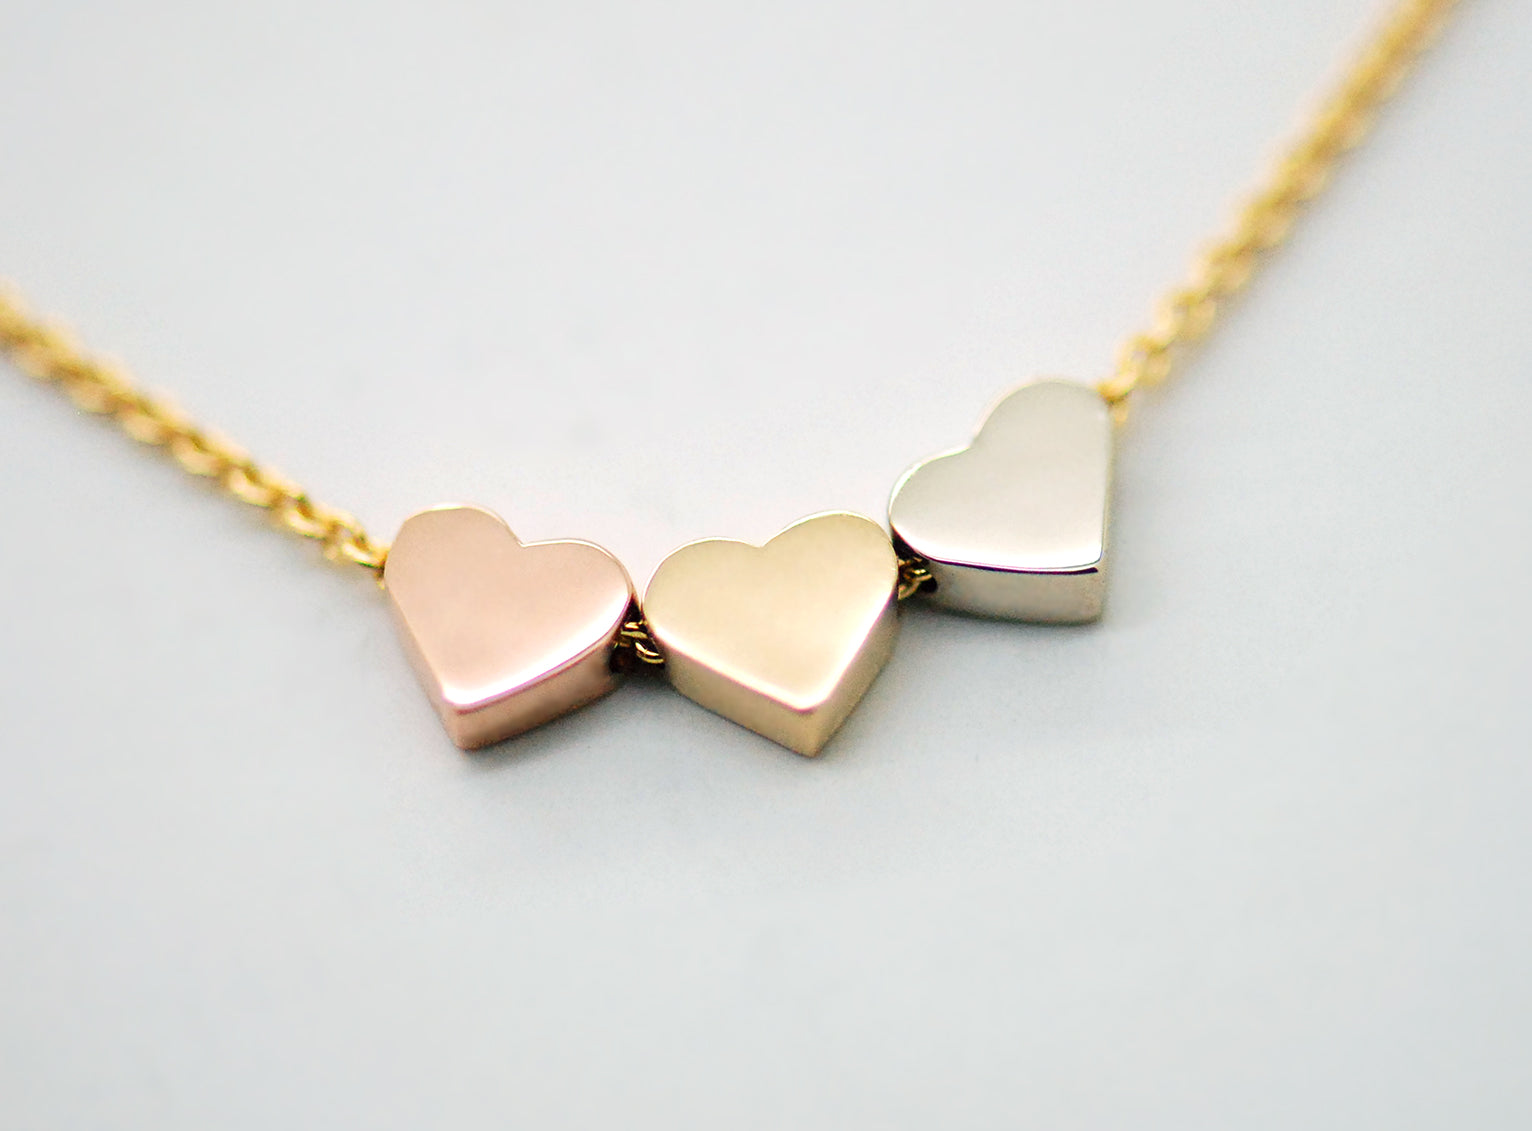 14k solid gold three hearts necklace yellow gold white gold rose gold necklace